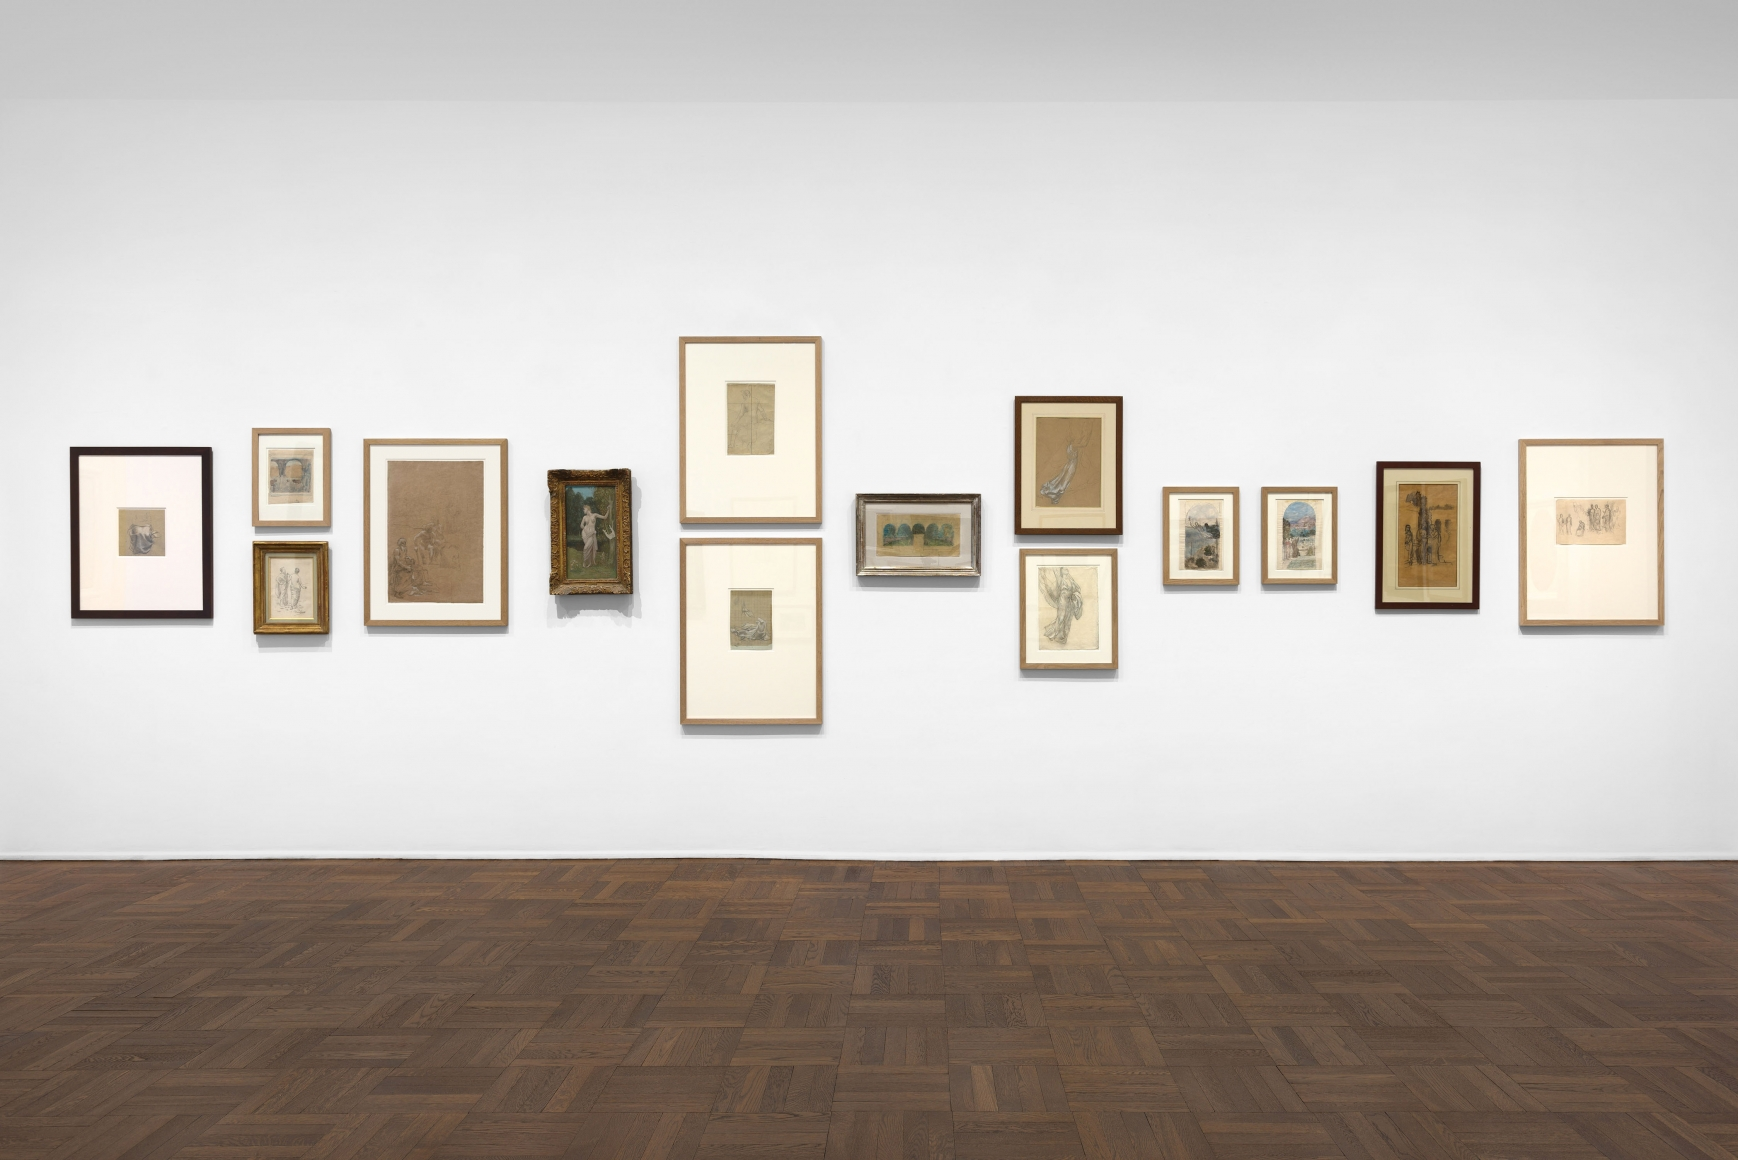 PIERRE PUVIS DE CHAVANNES, Works on Paper and Paintings, New York, 2018, Installation Image 5